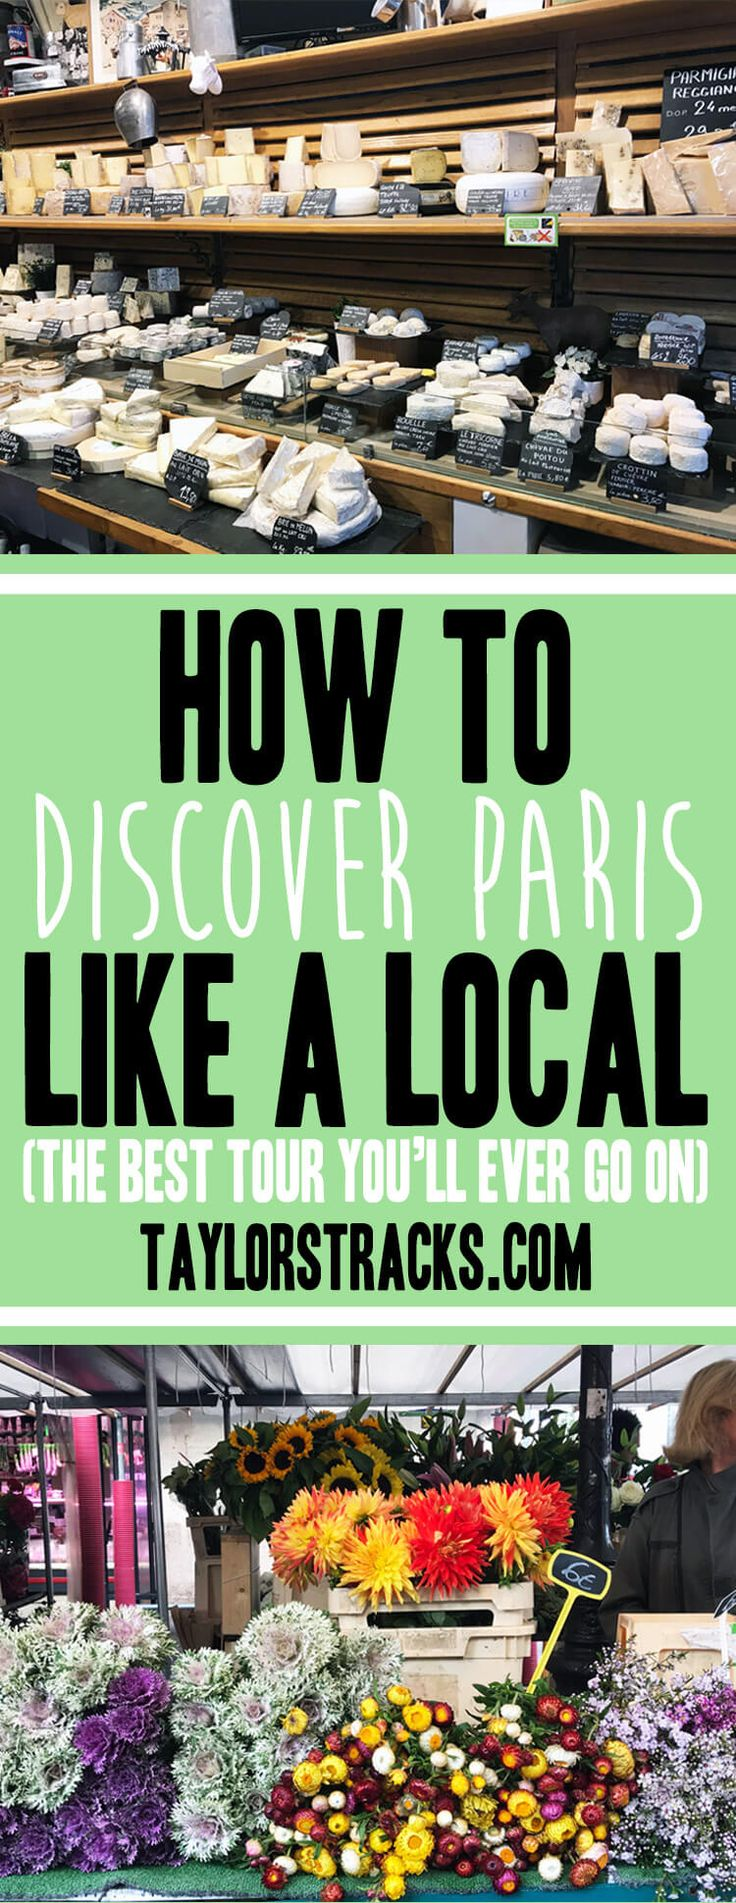 Heading to Paris? Learn how to get off the beaten path and see the city of lights through a locals eyes. #paris #europe ****************************************Paris France | France travel | Europe travel | Europe destinations | Paris tour | Paris tour guide | Paris food | Paris food market